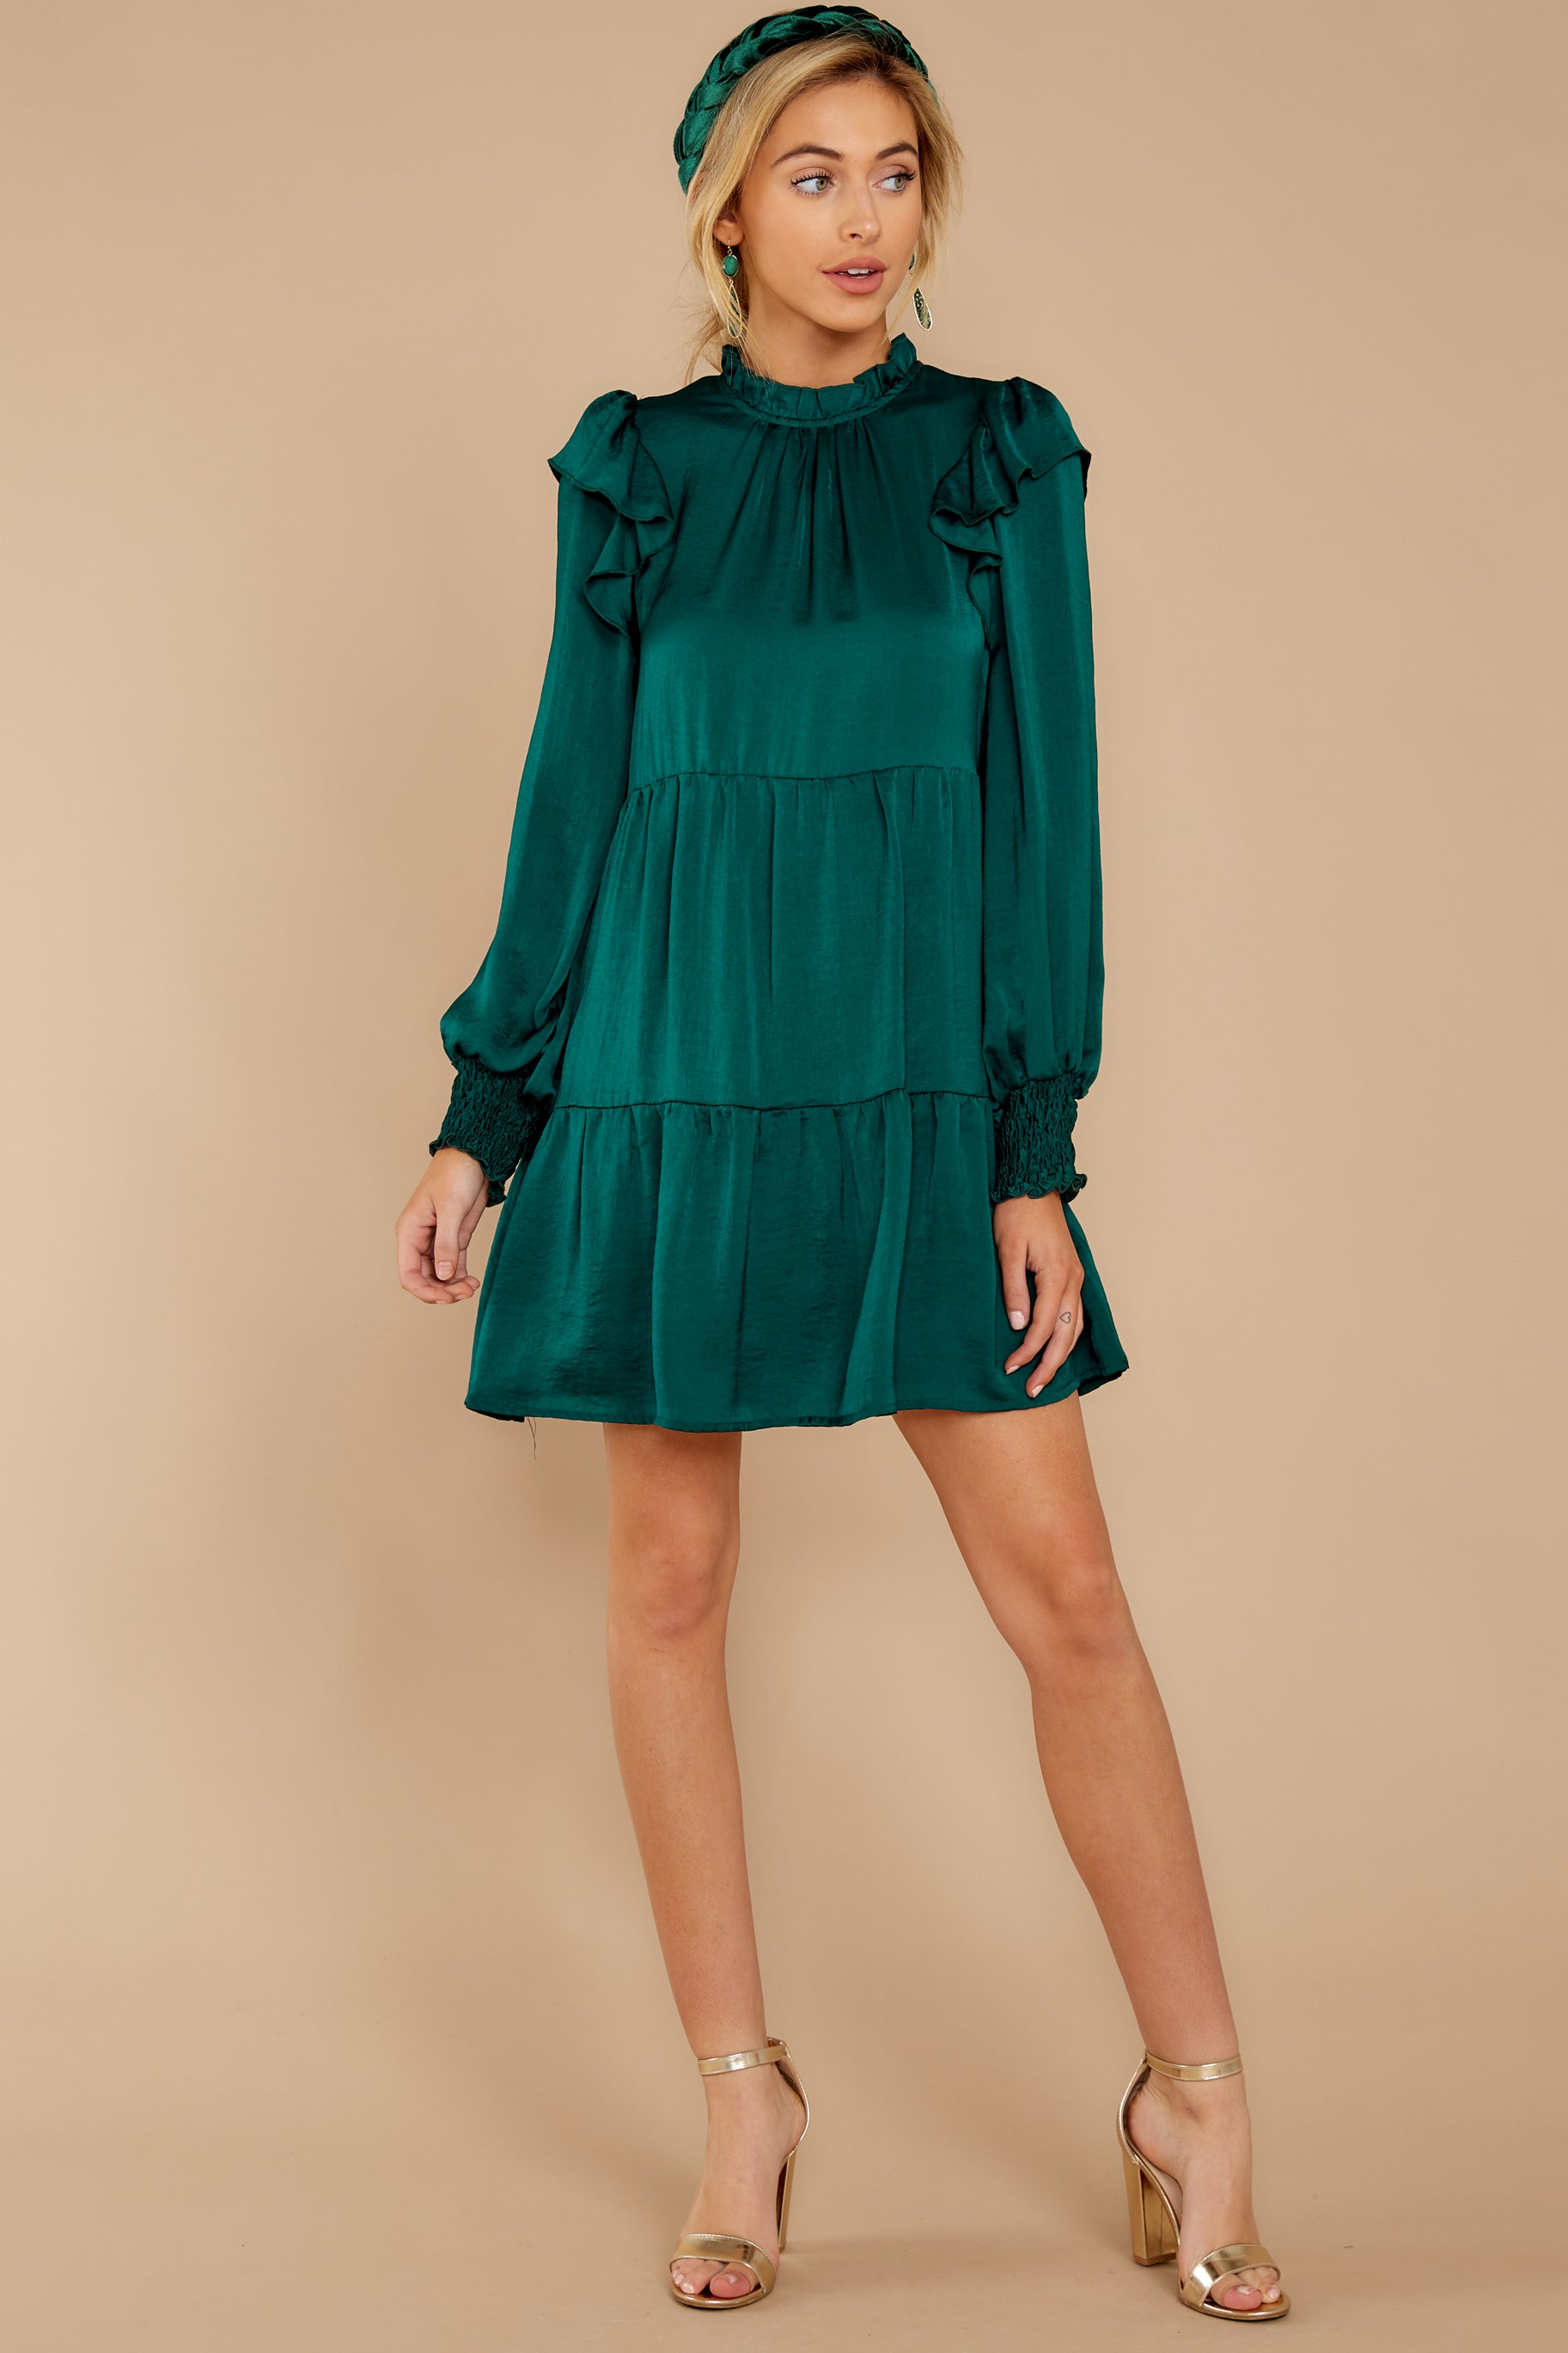 3 On My Level Emerald Green Dress at reddressboutique.com